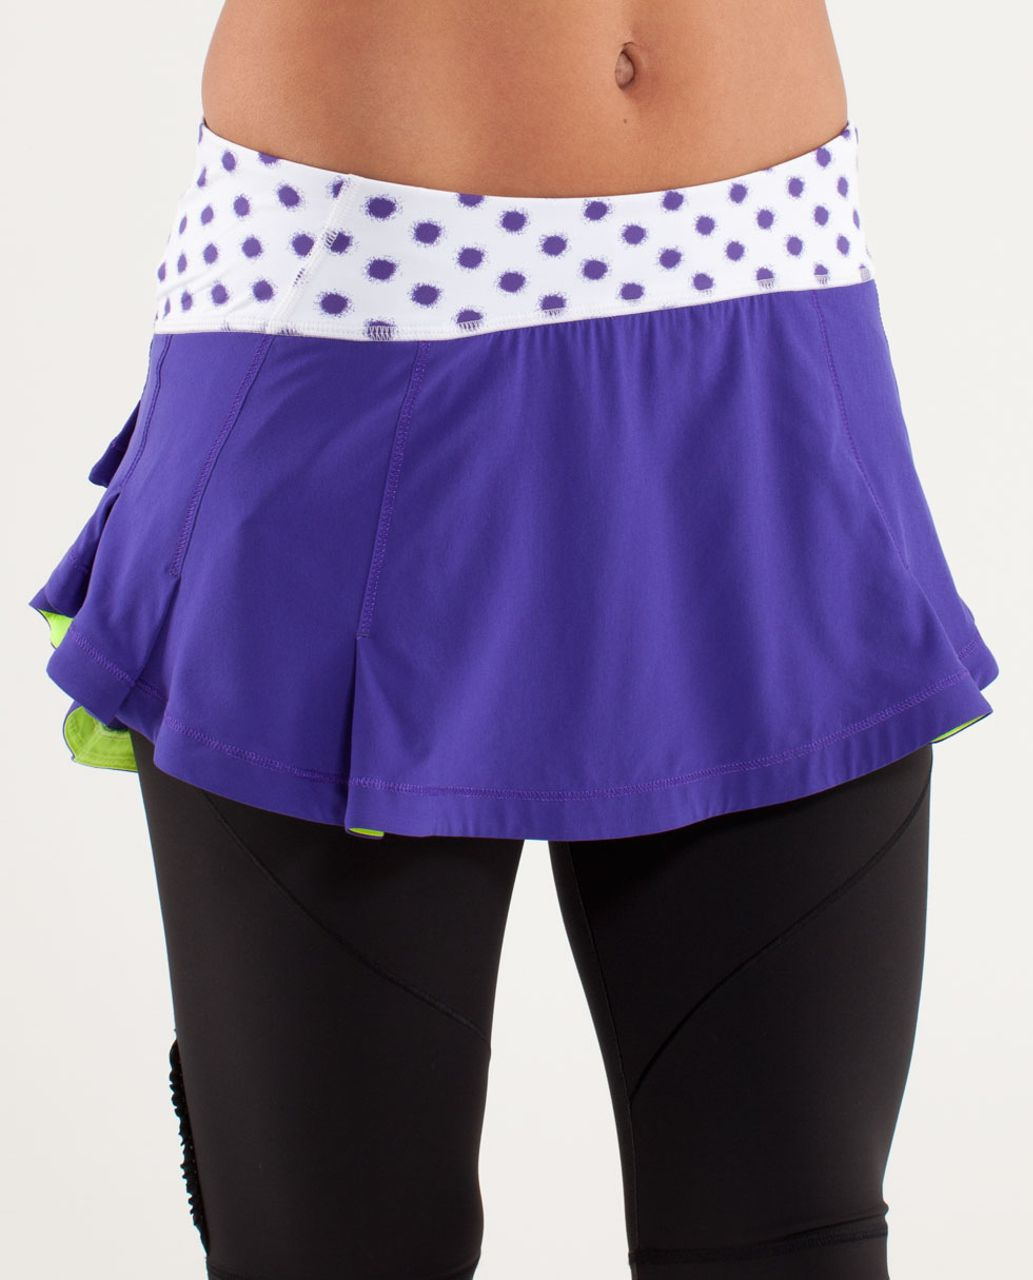 Lululemon Presta Skirt - Bruised Berry / High Noon Dot White / Bruised Berry